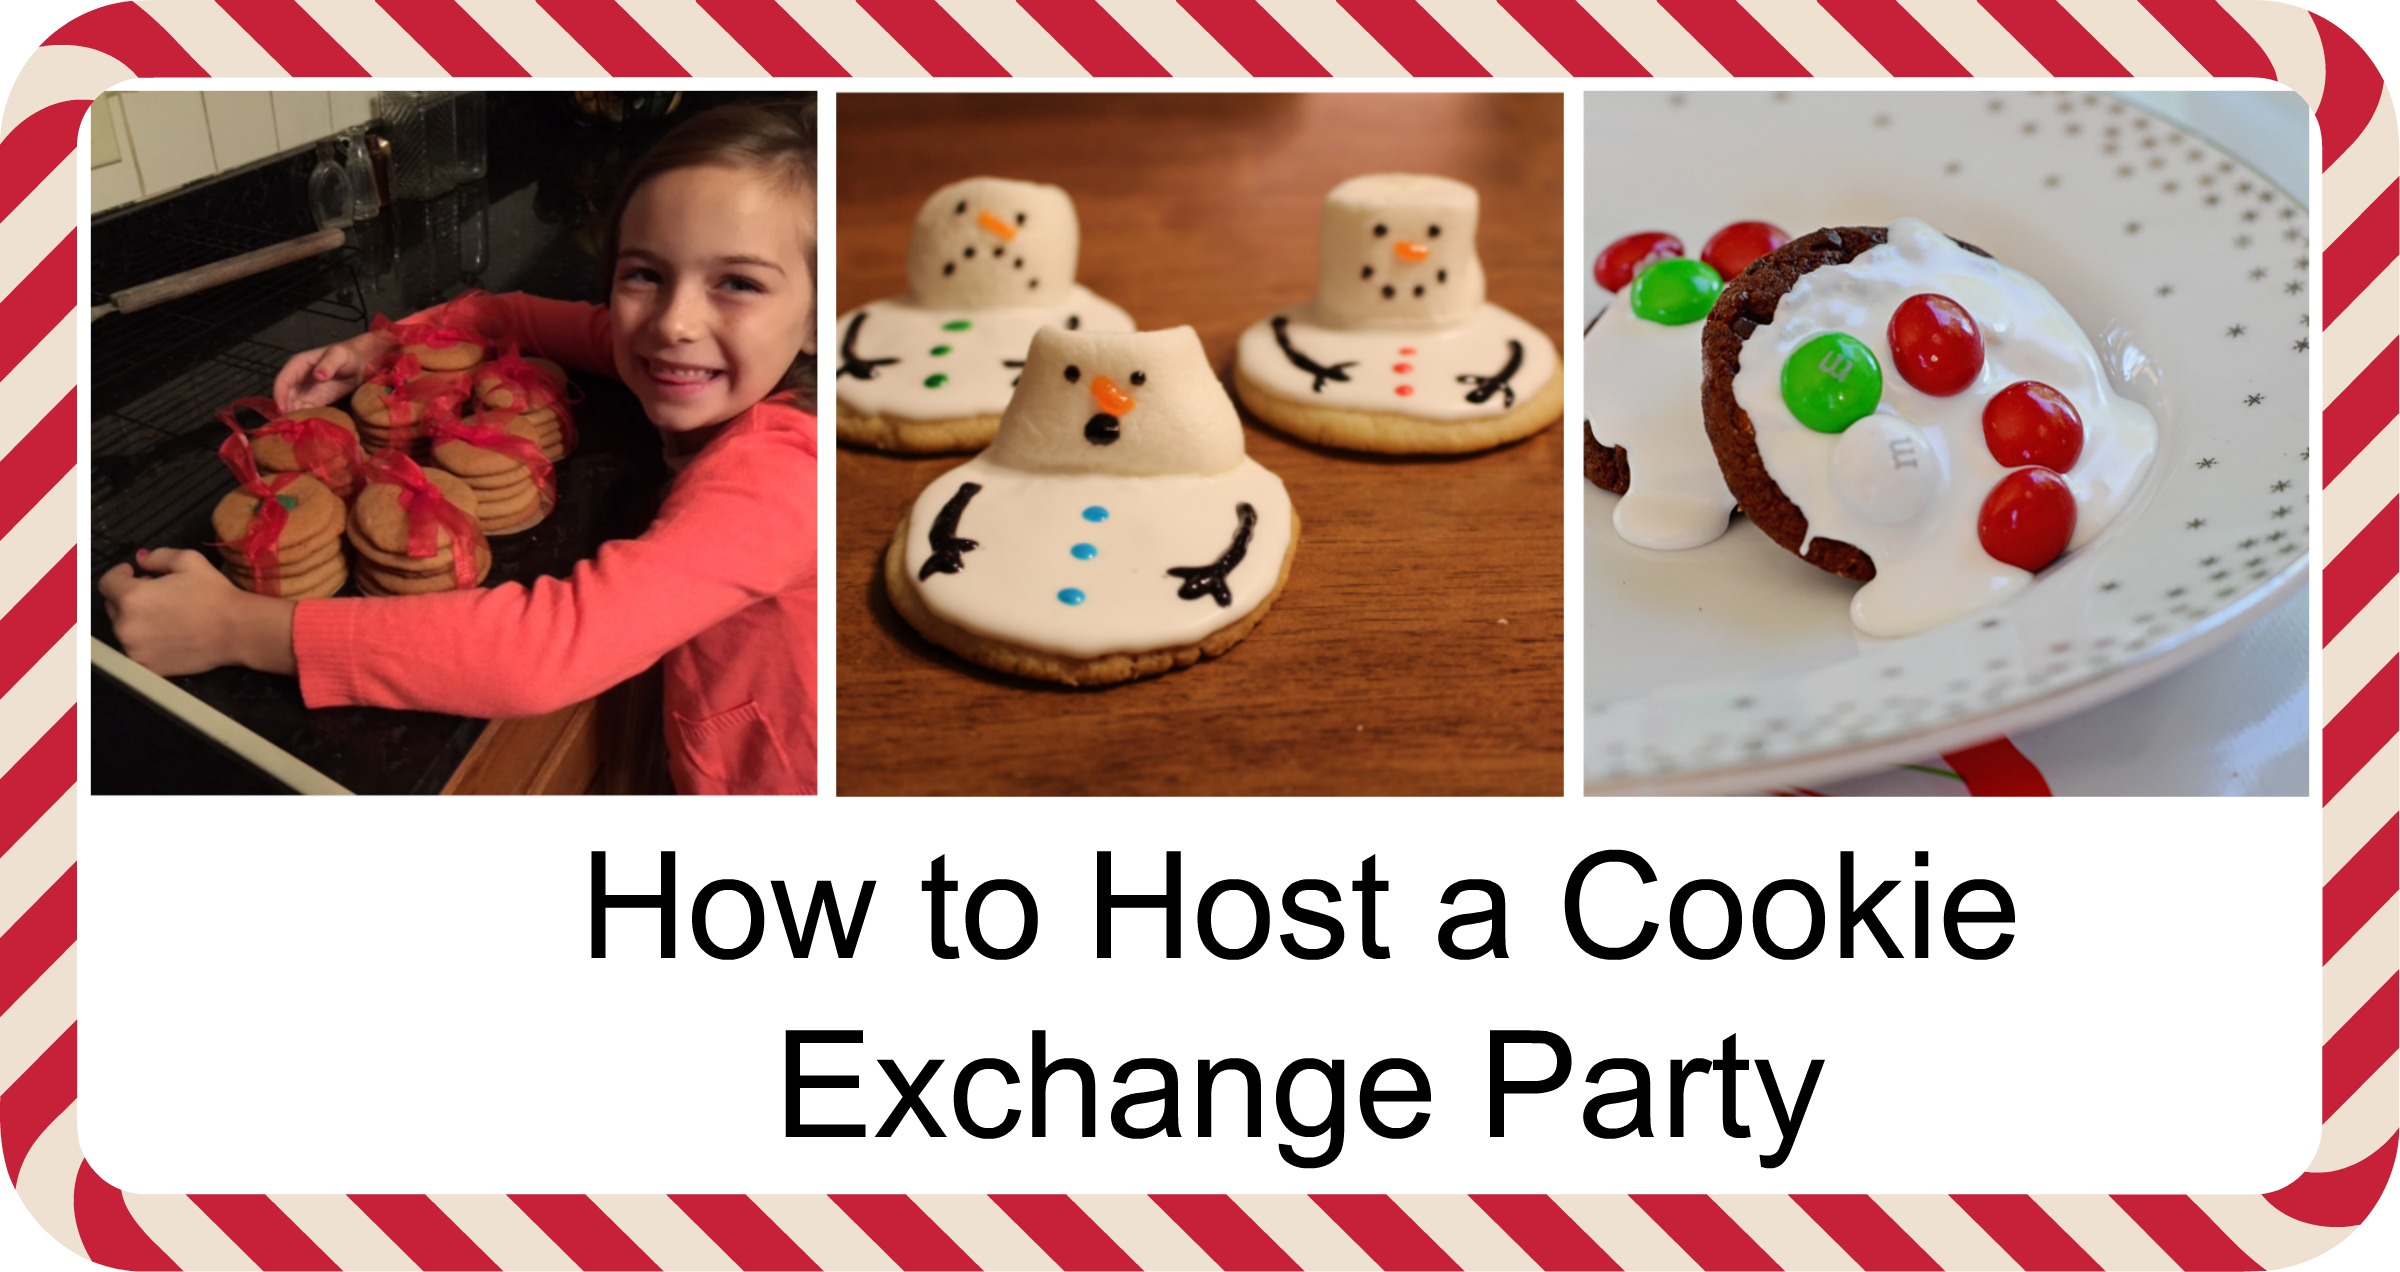 Holiday Cookie Exchange Checklist You bake one kind of cookie, you end up with a flavorful assortment to last through the holidays―that's the idea behind a cookie exchange.